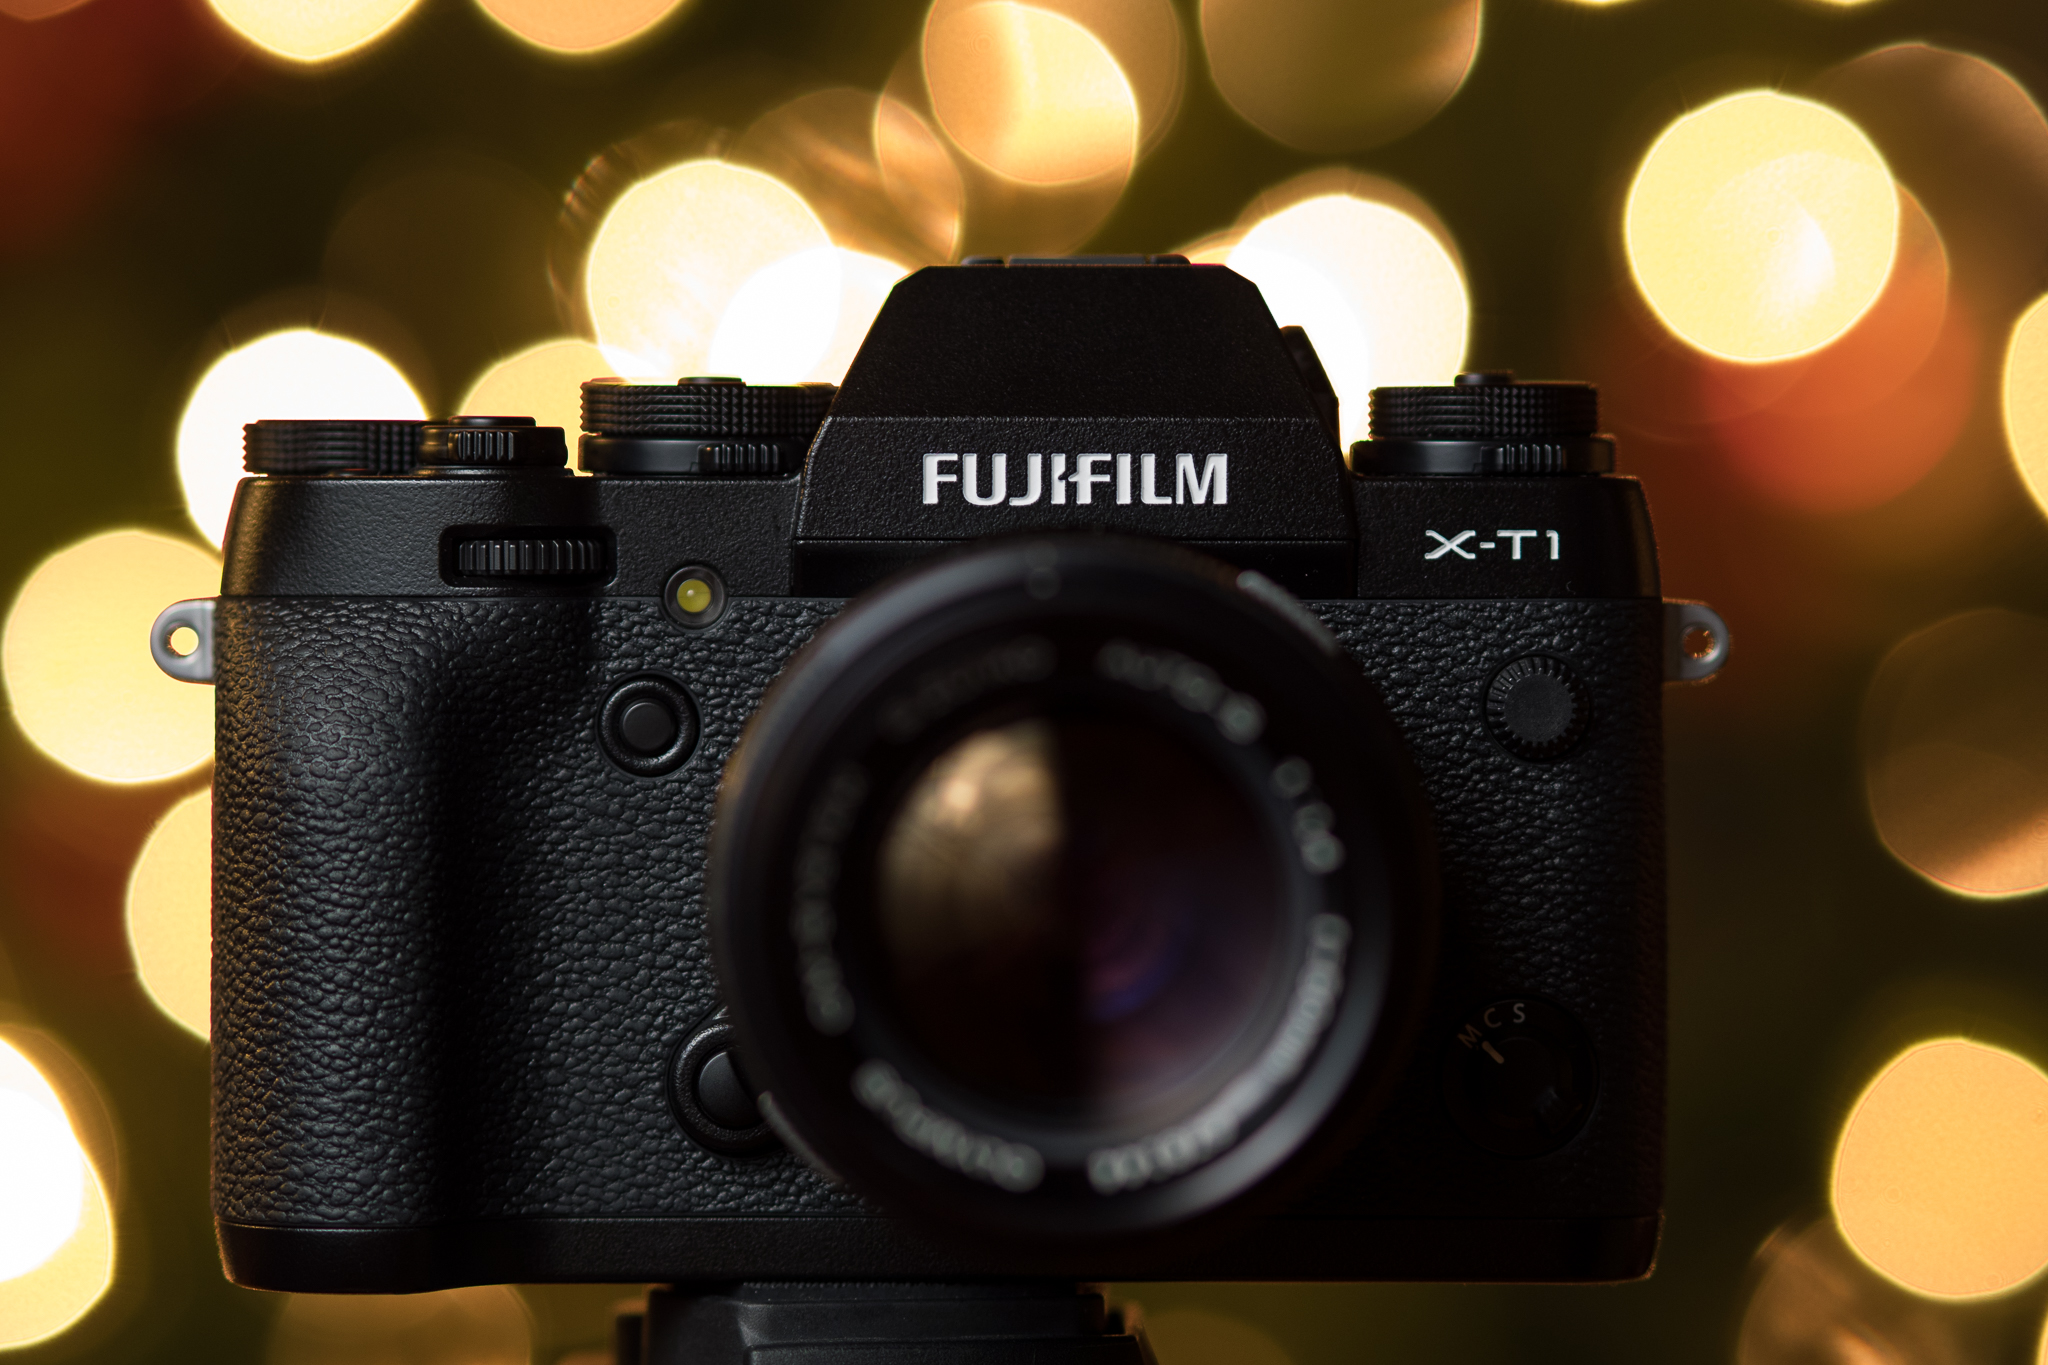 Fujifilm X-T1 - A great Christmas present to myself - Taken with the Olympus OMD & 75mm